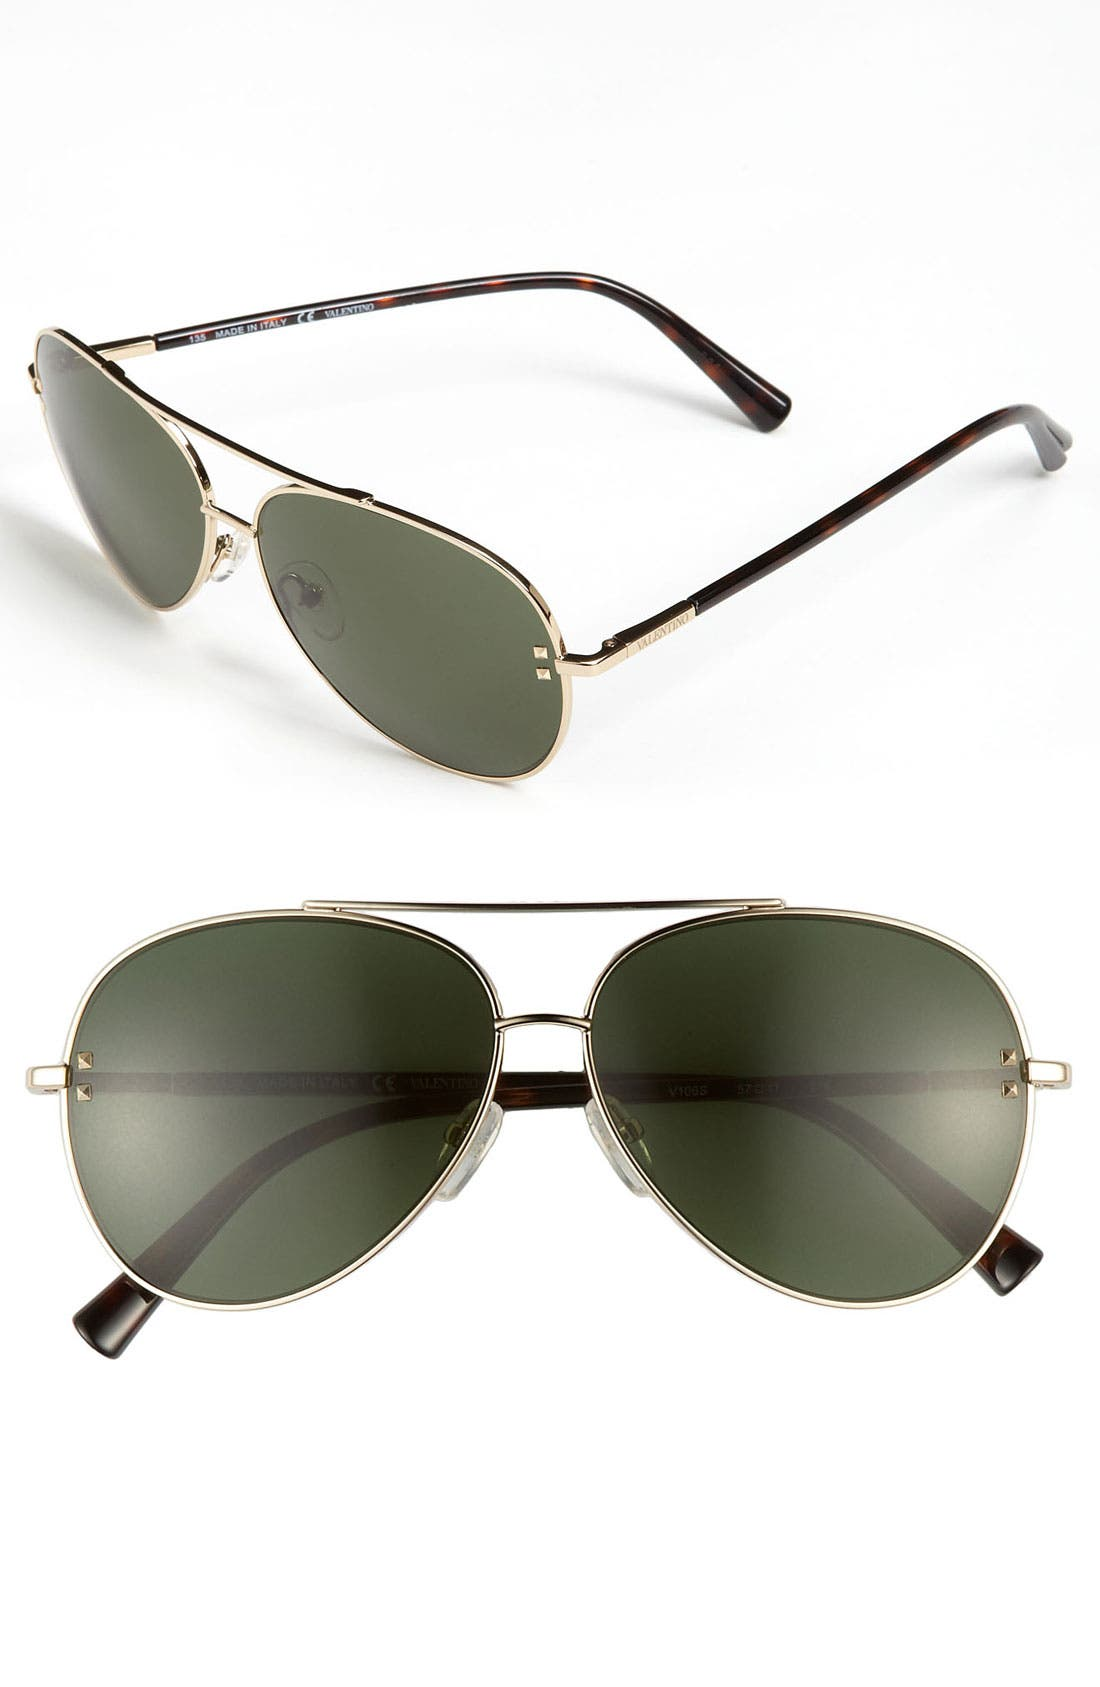 Main Image - Valentino 57mm Metal Aviator Sunglasses